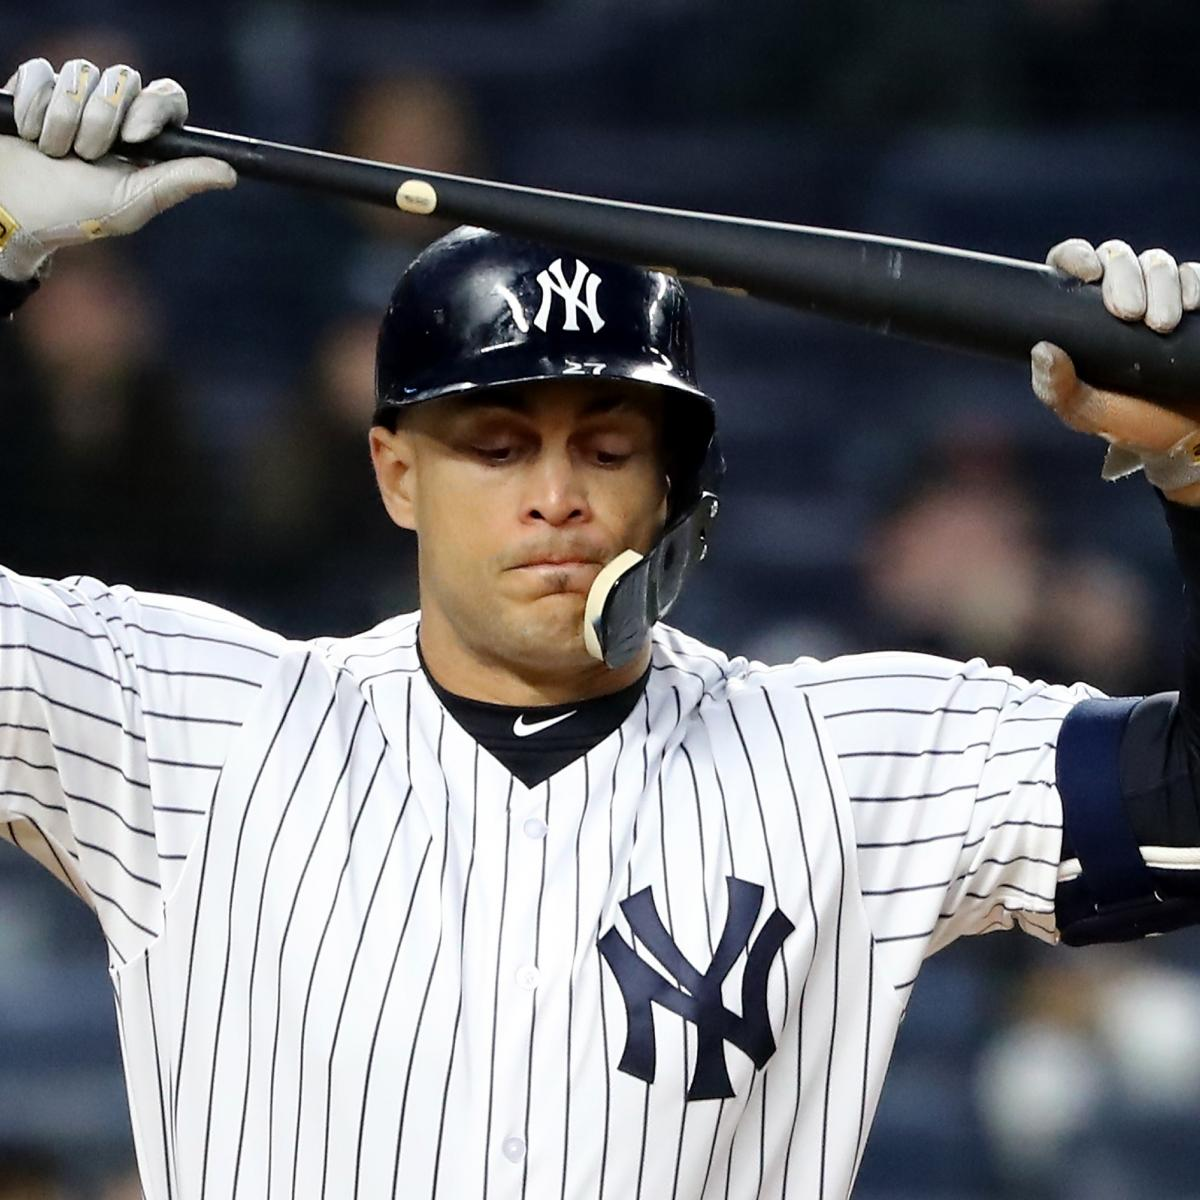 Giancarlo Stanton: Yankees News: Giancarlo Stanton Dropped To 4th In Lineup